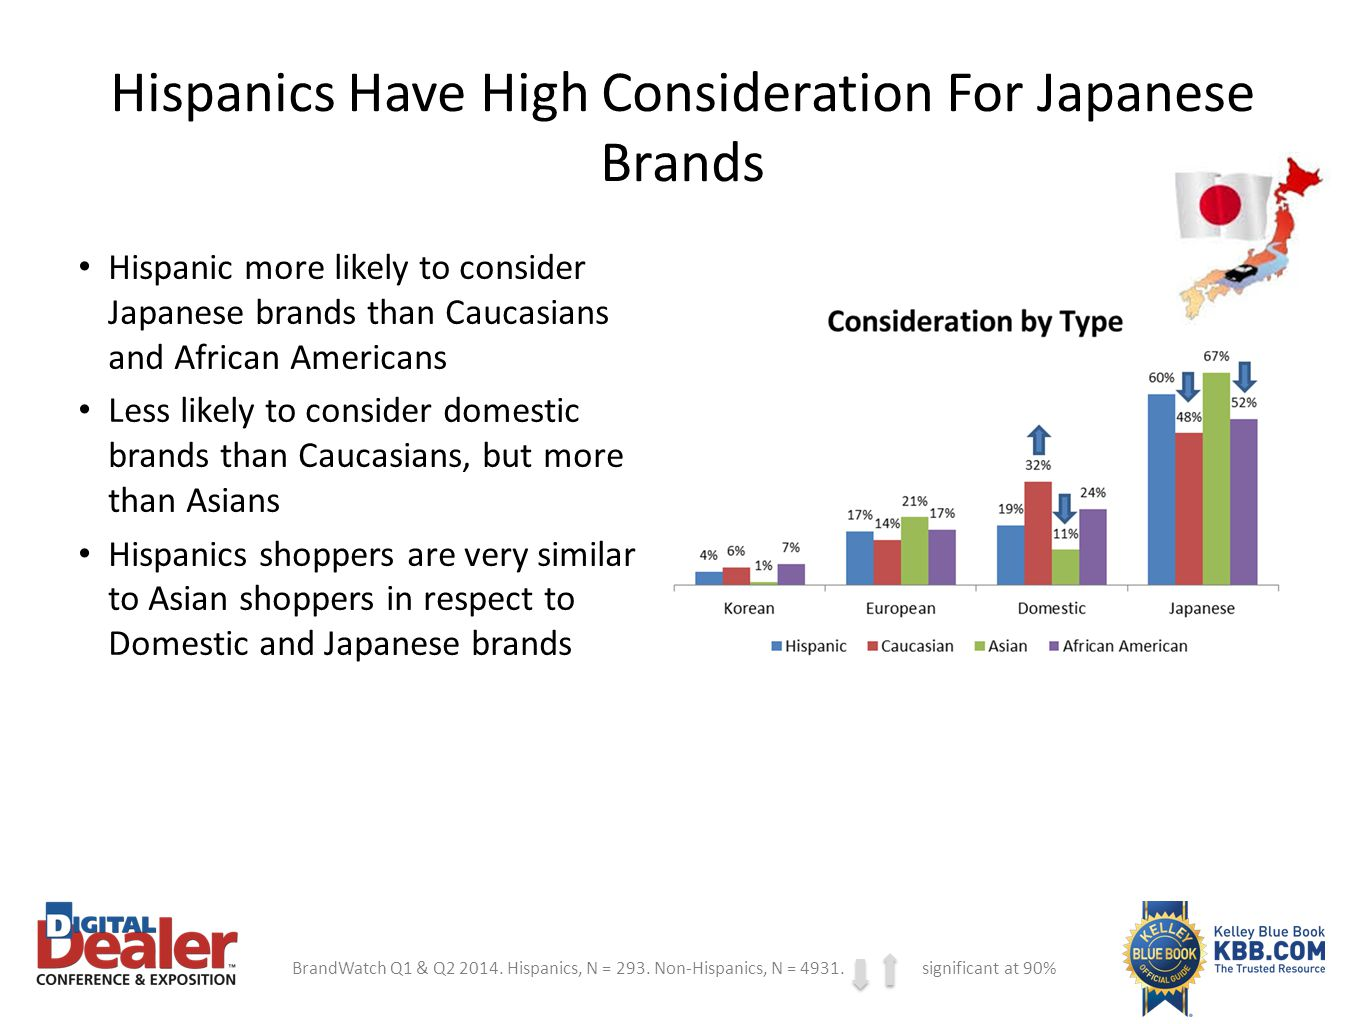 Hispanics Have High Consideration For Japanese Brands